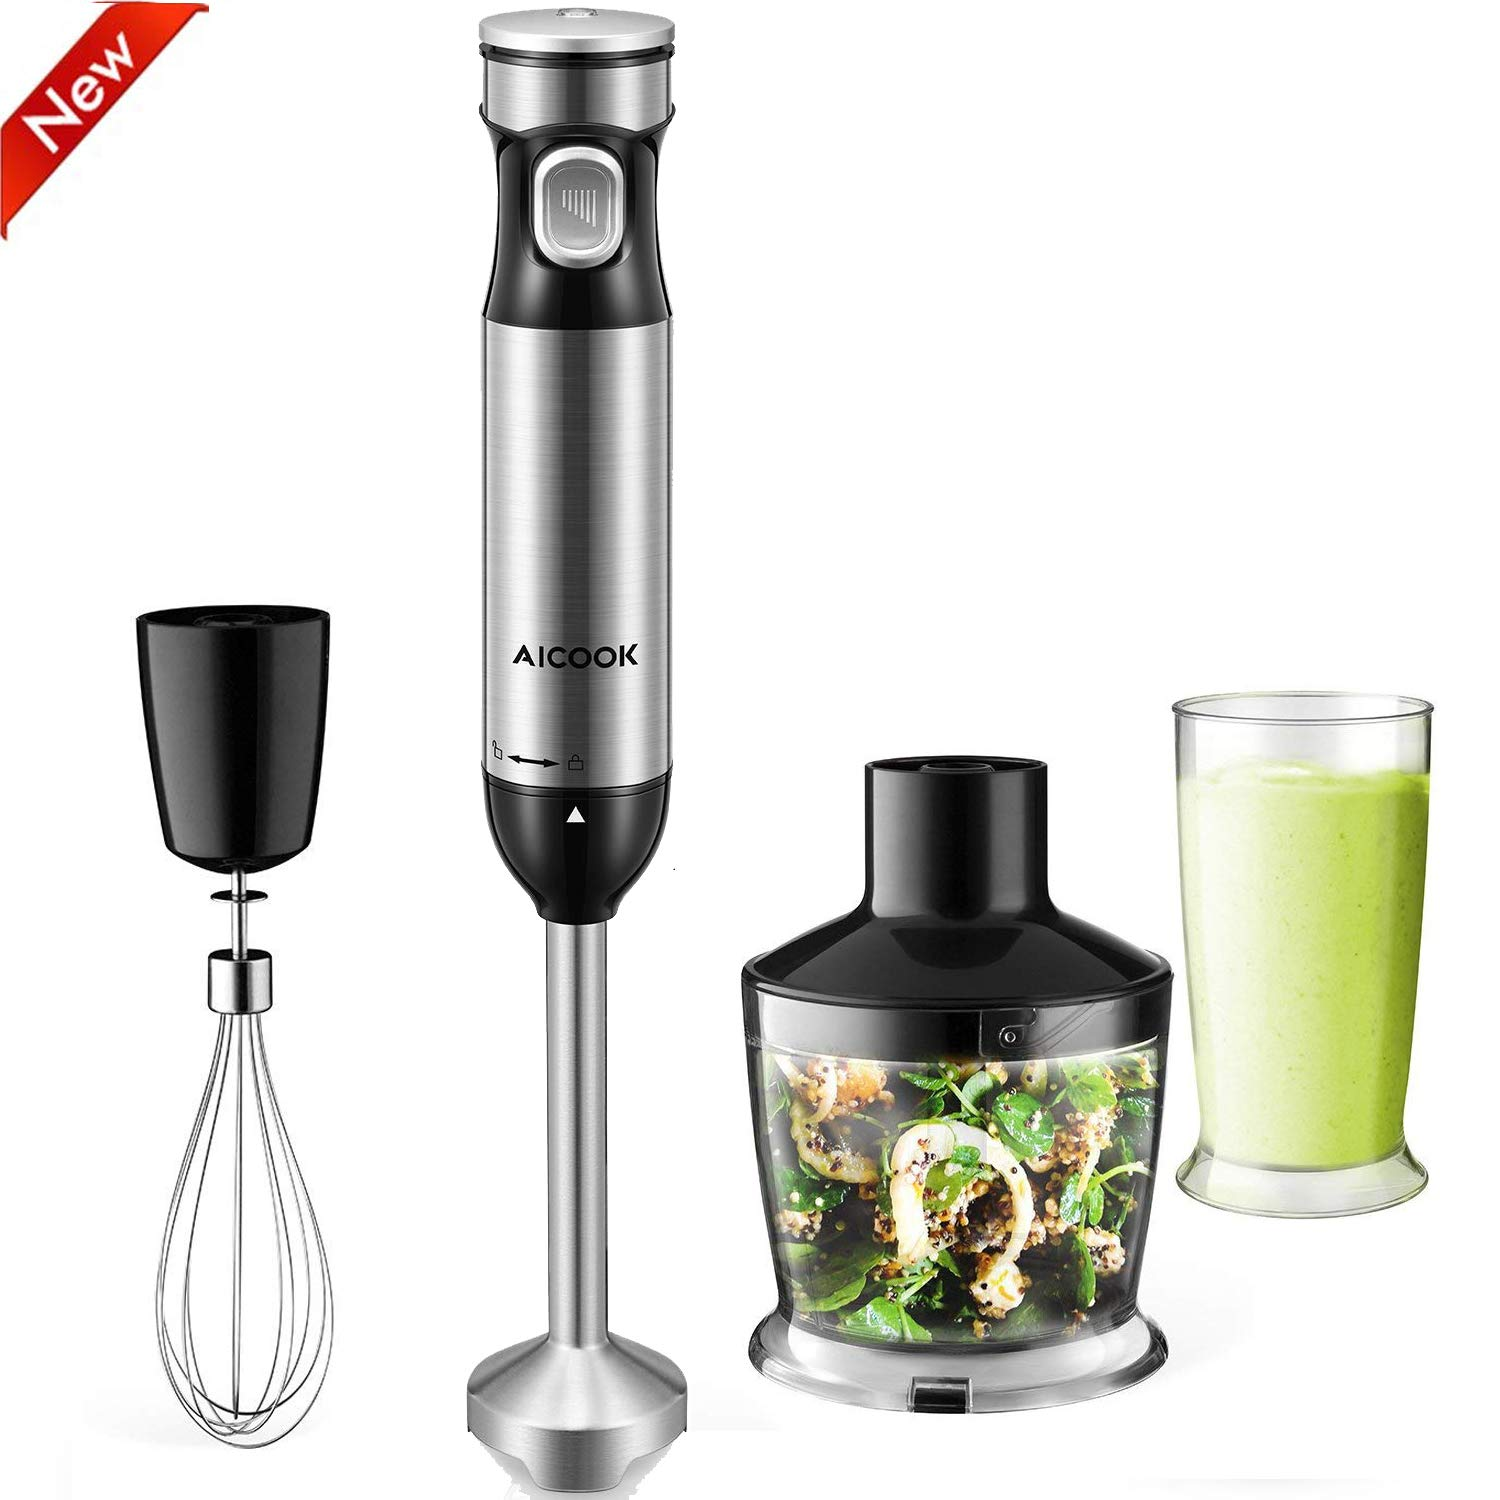 AICOOK Immersion Blender 4 in 1 Hand Blender(BPA-Free), Smart Stepless All Speed Control Heavy Duty Copper Motor Brushed Stainless Steel, Including Beaker, Whisk Attachments, Titanium Coating Blade by AICOOK